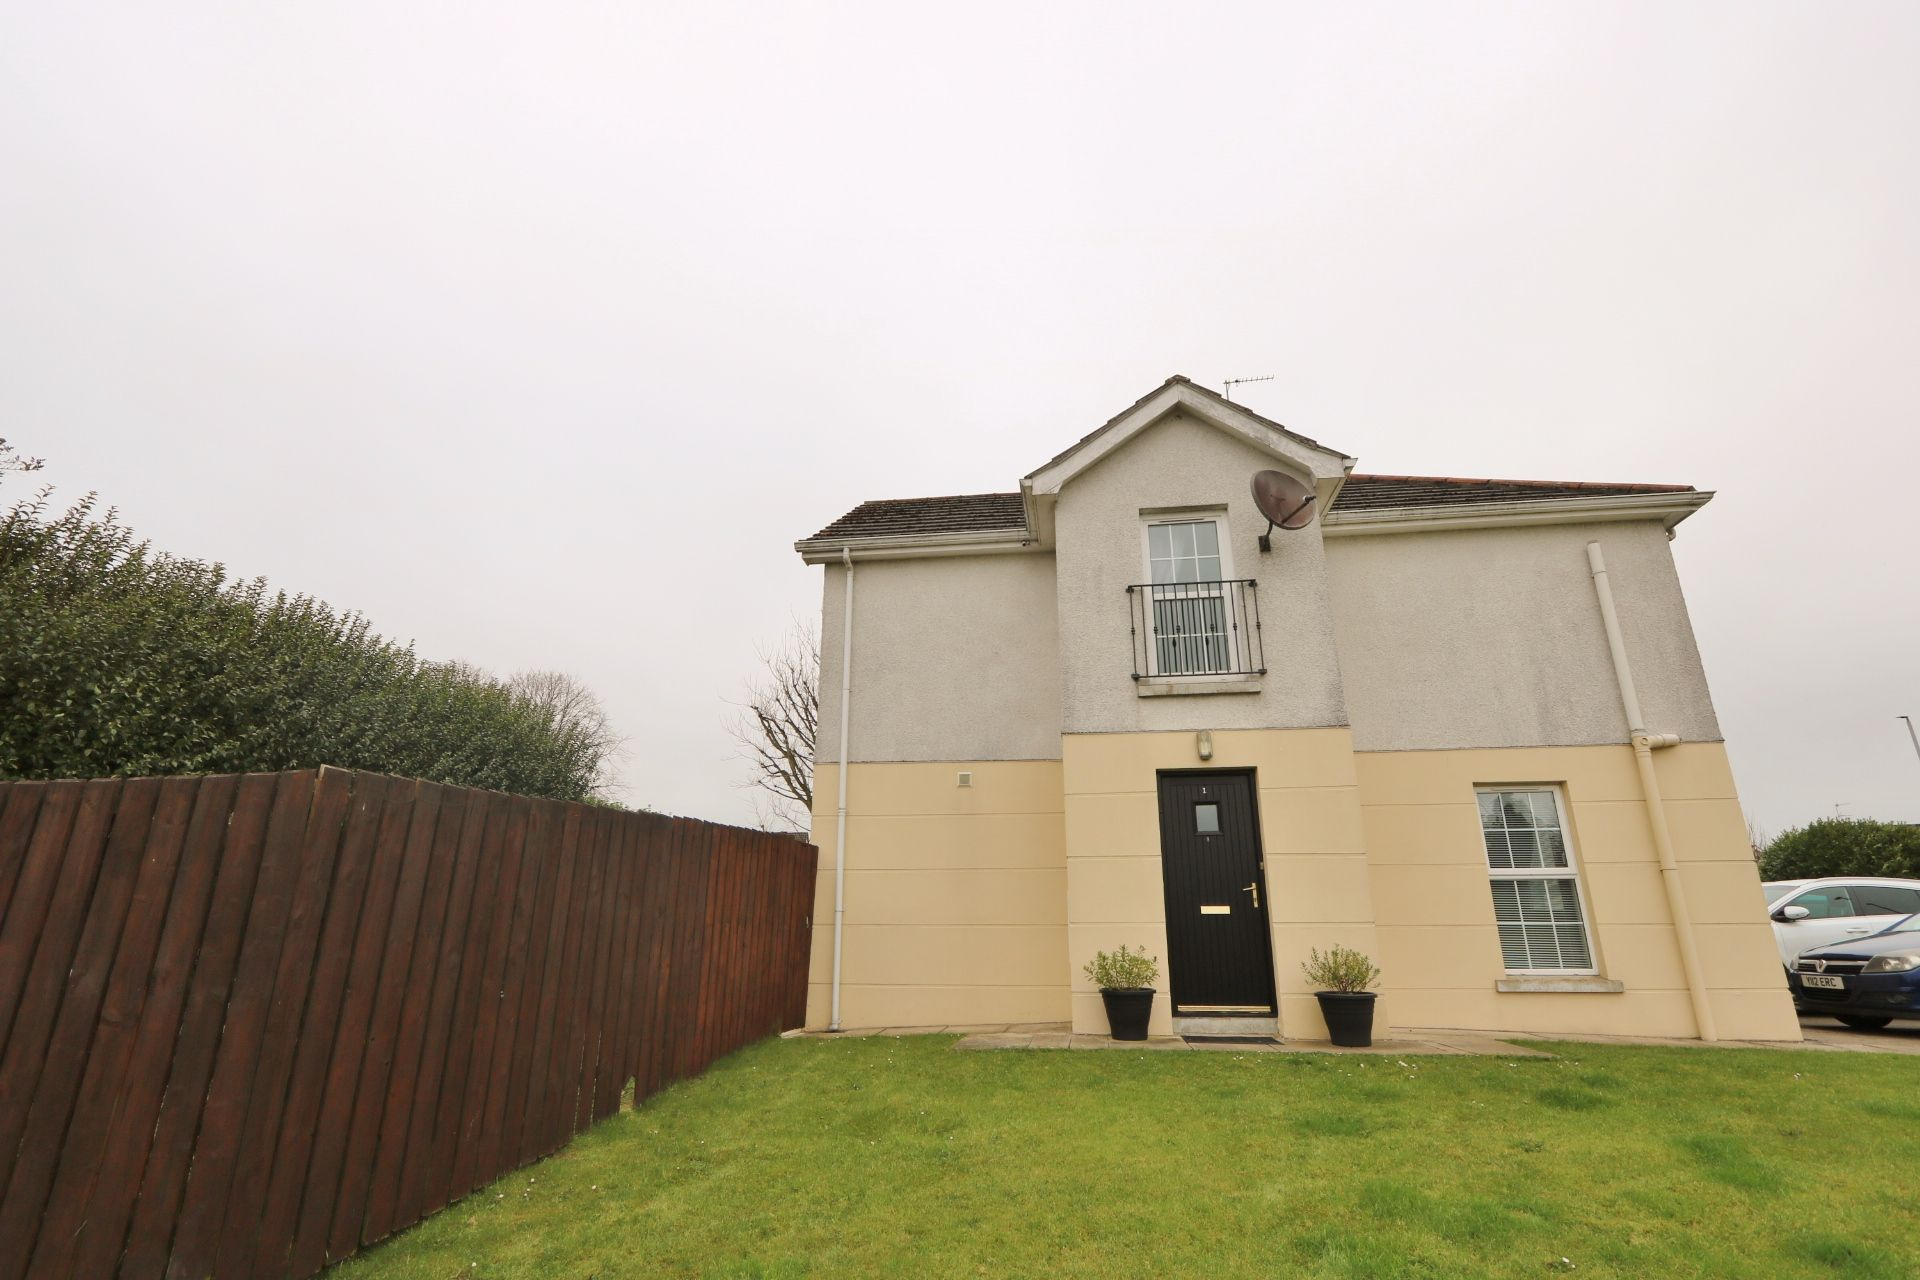 3 bedroom end terraced house For Sale in Antrim - Property photograph